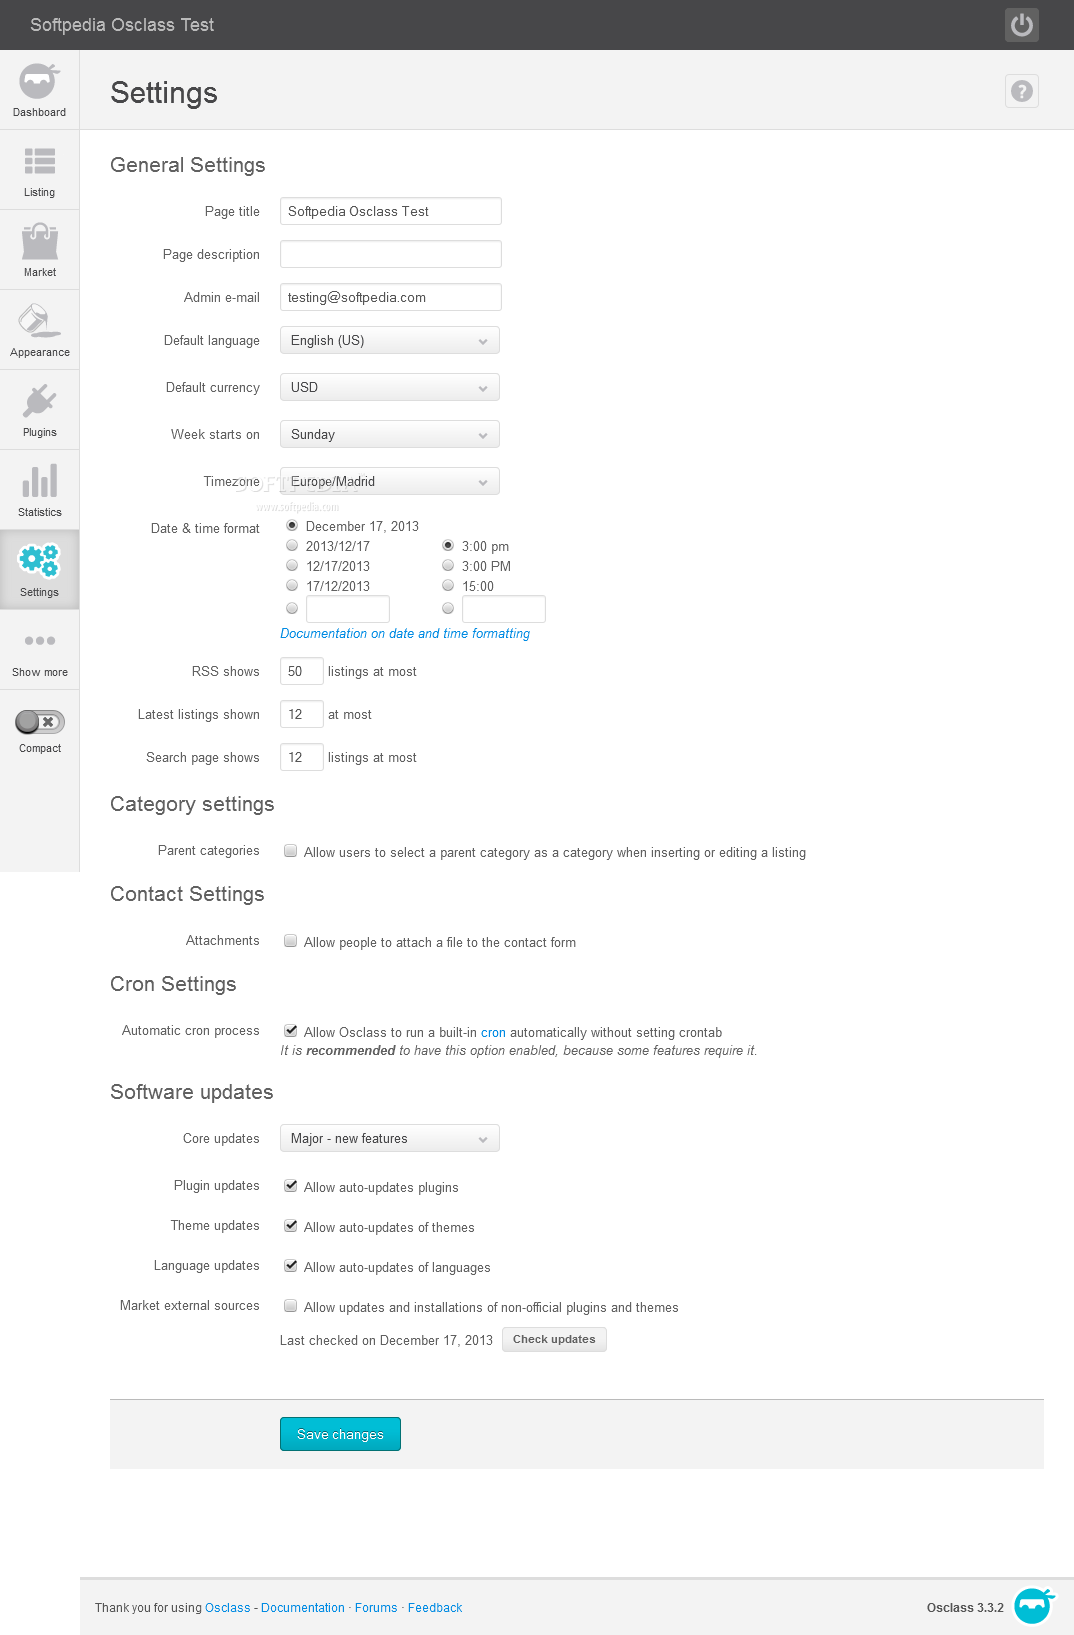 OSClass - Various tweaks can be made to the classified ads system via the OSClass settings page